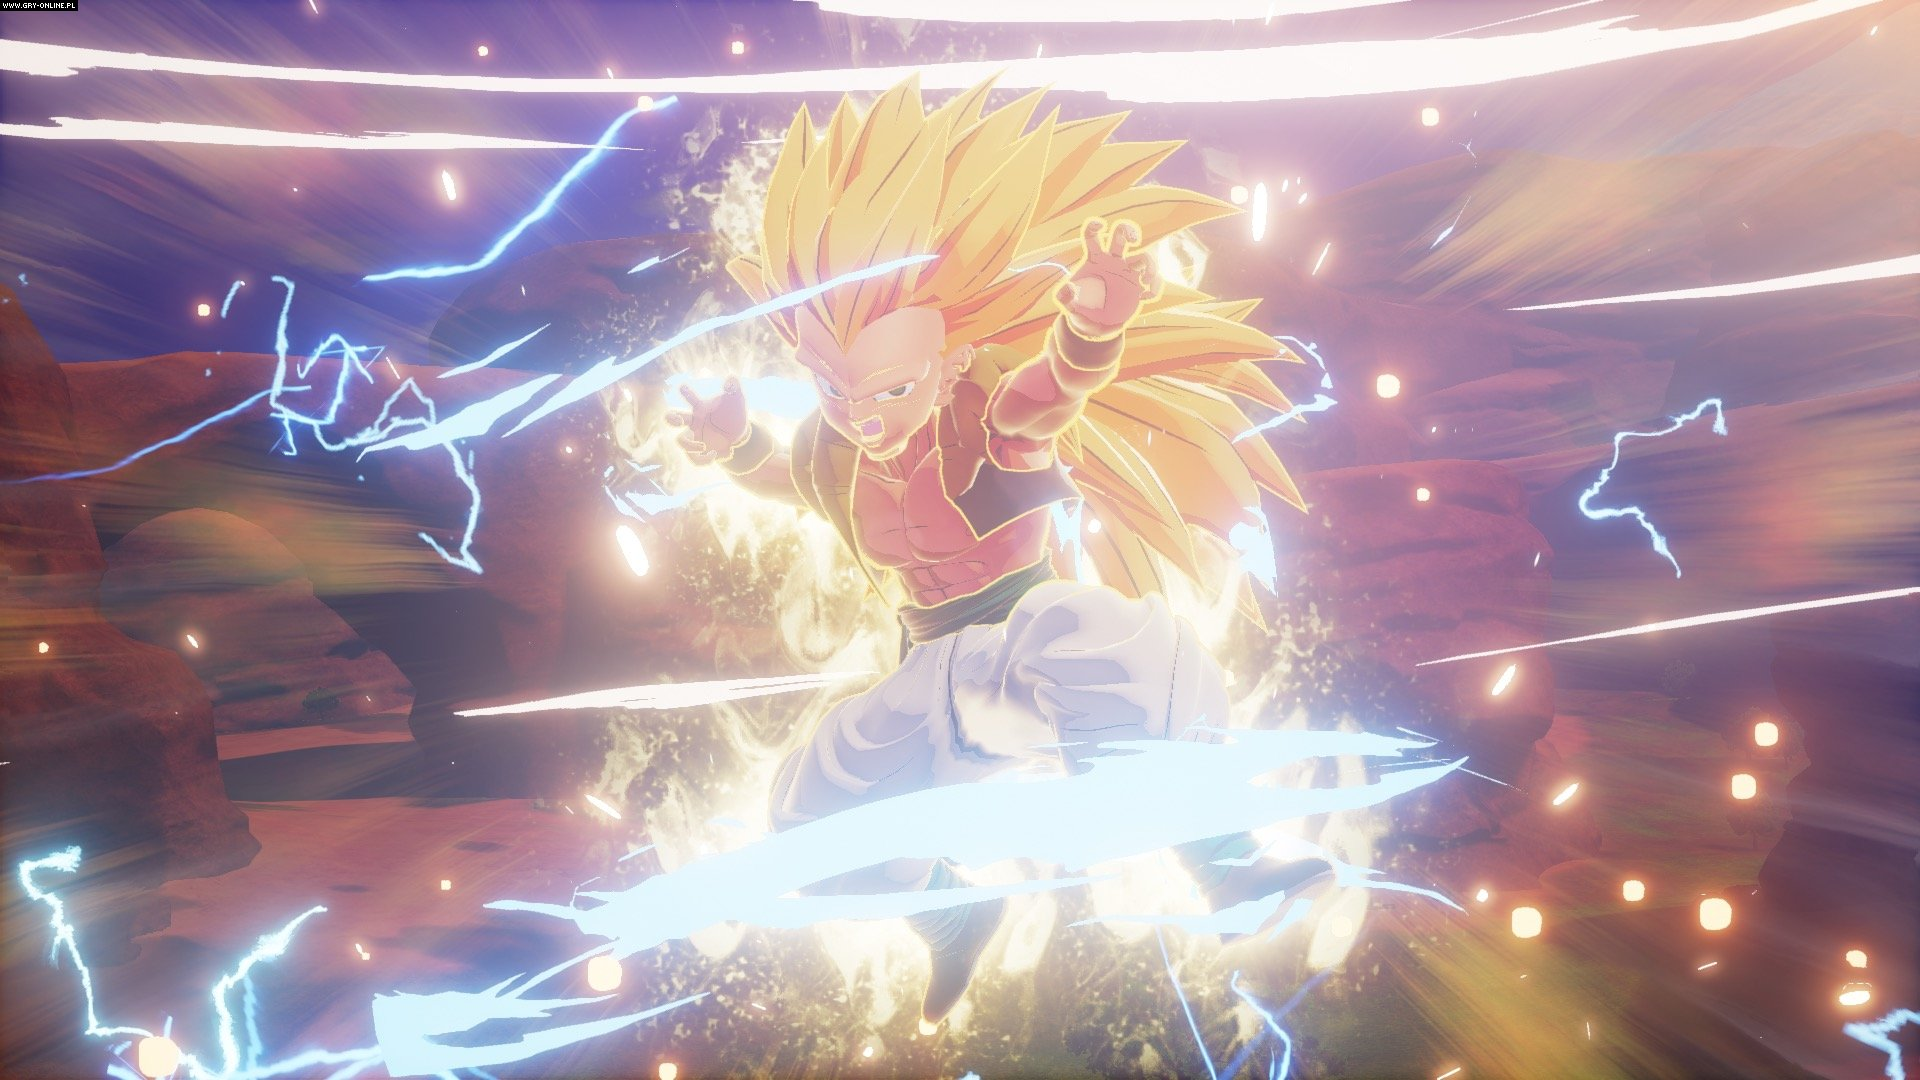 Dragon Ball Z: Kakarot PC, PS4, XONE Games Image 19/109, Cyberconnect2, Bandai Namco Entertainment